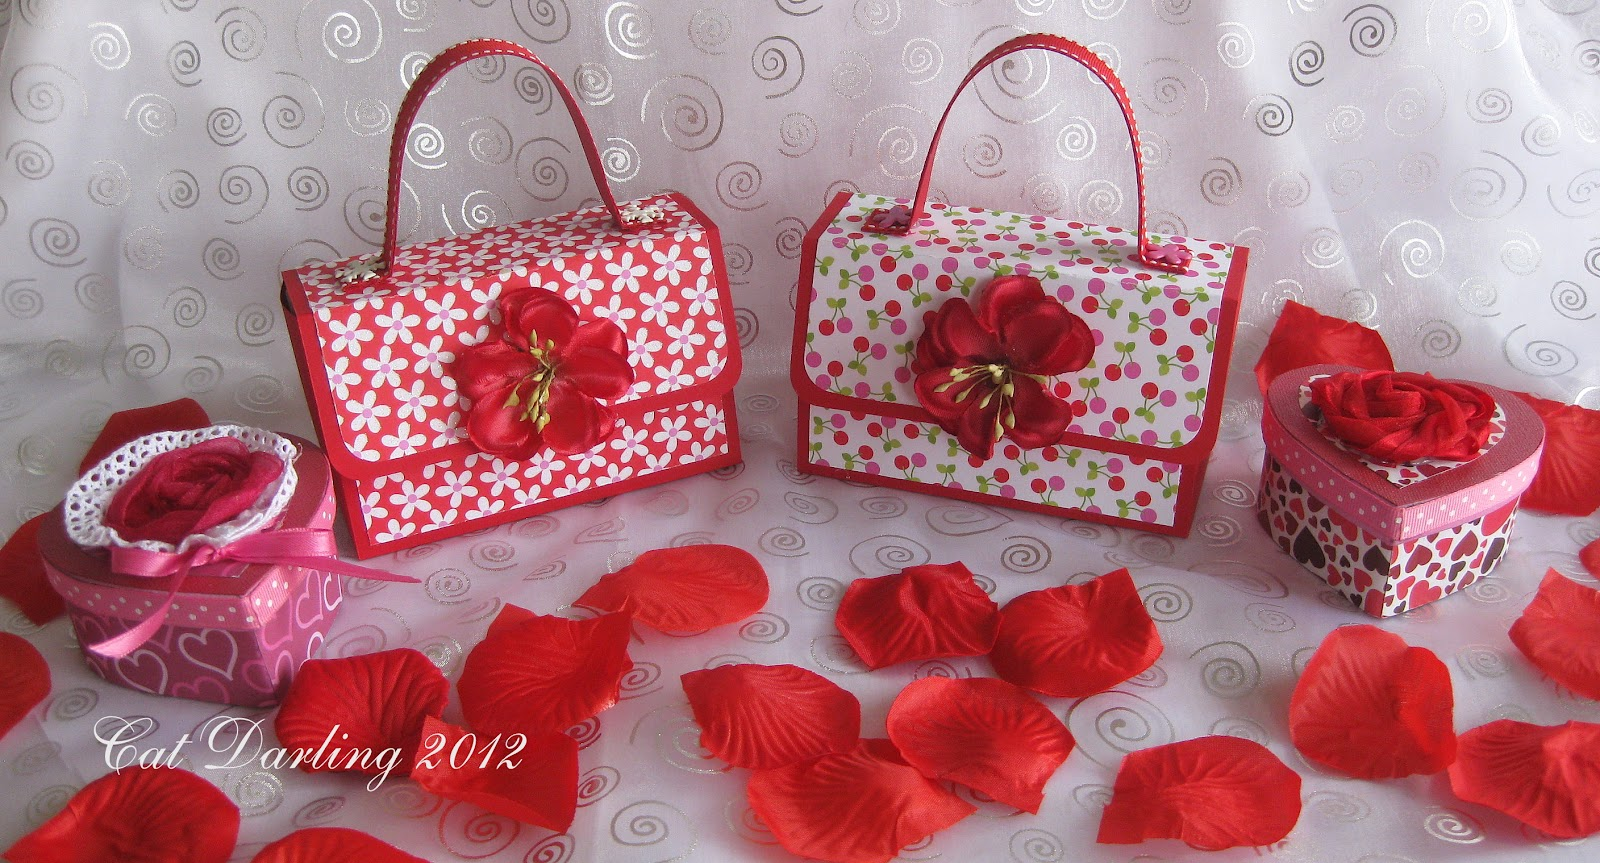 Cat\'s Crafty Corner: More Sweet Treats for Valentine\'s Day!